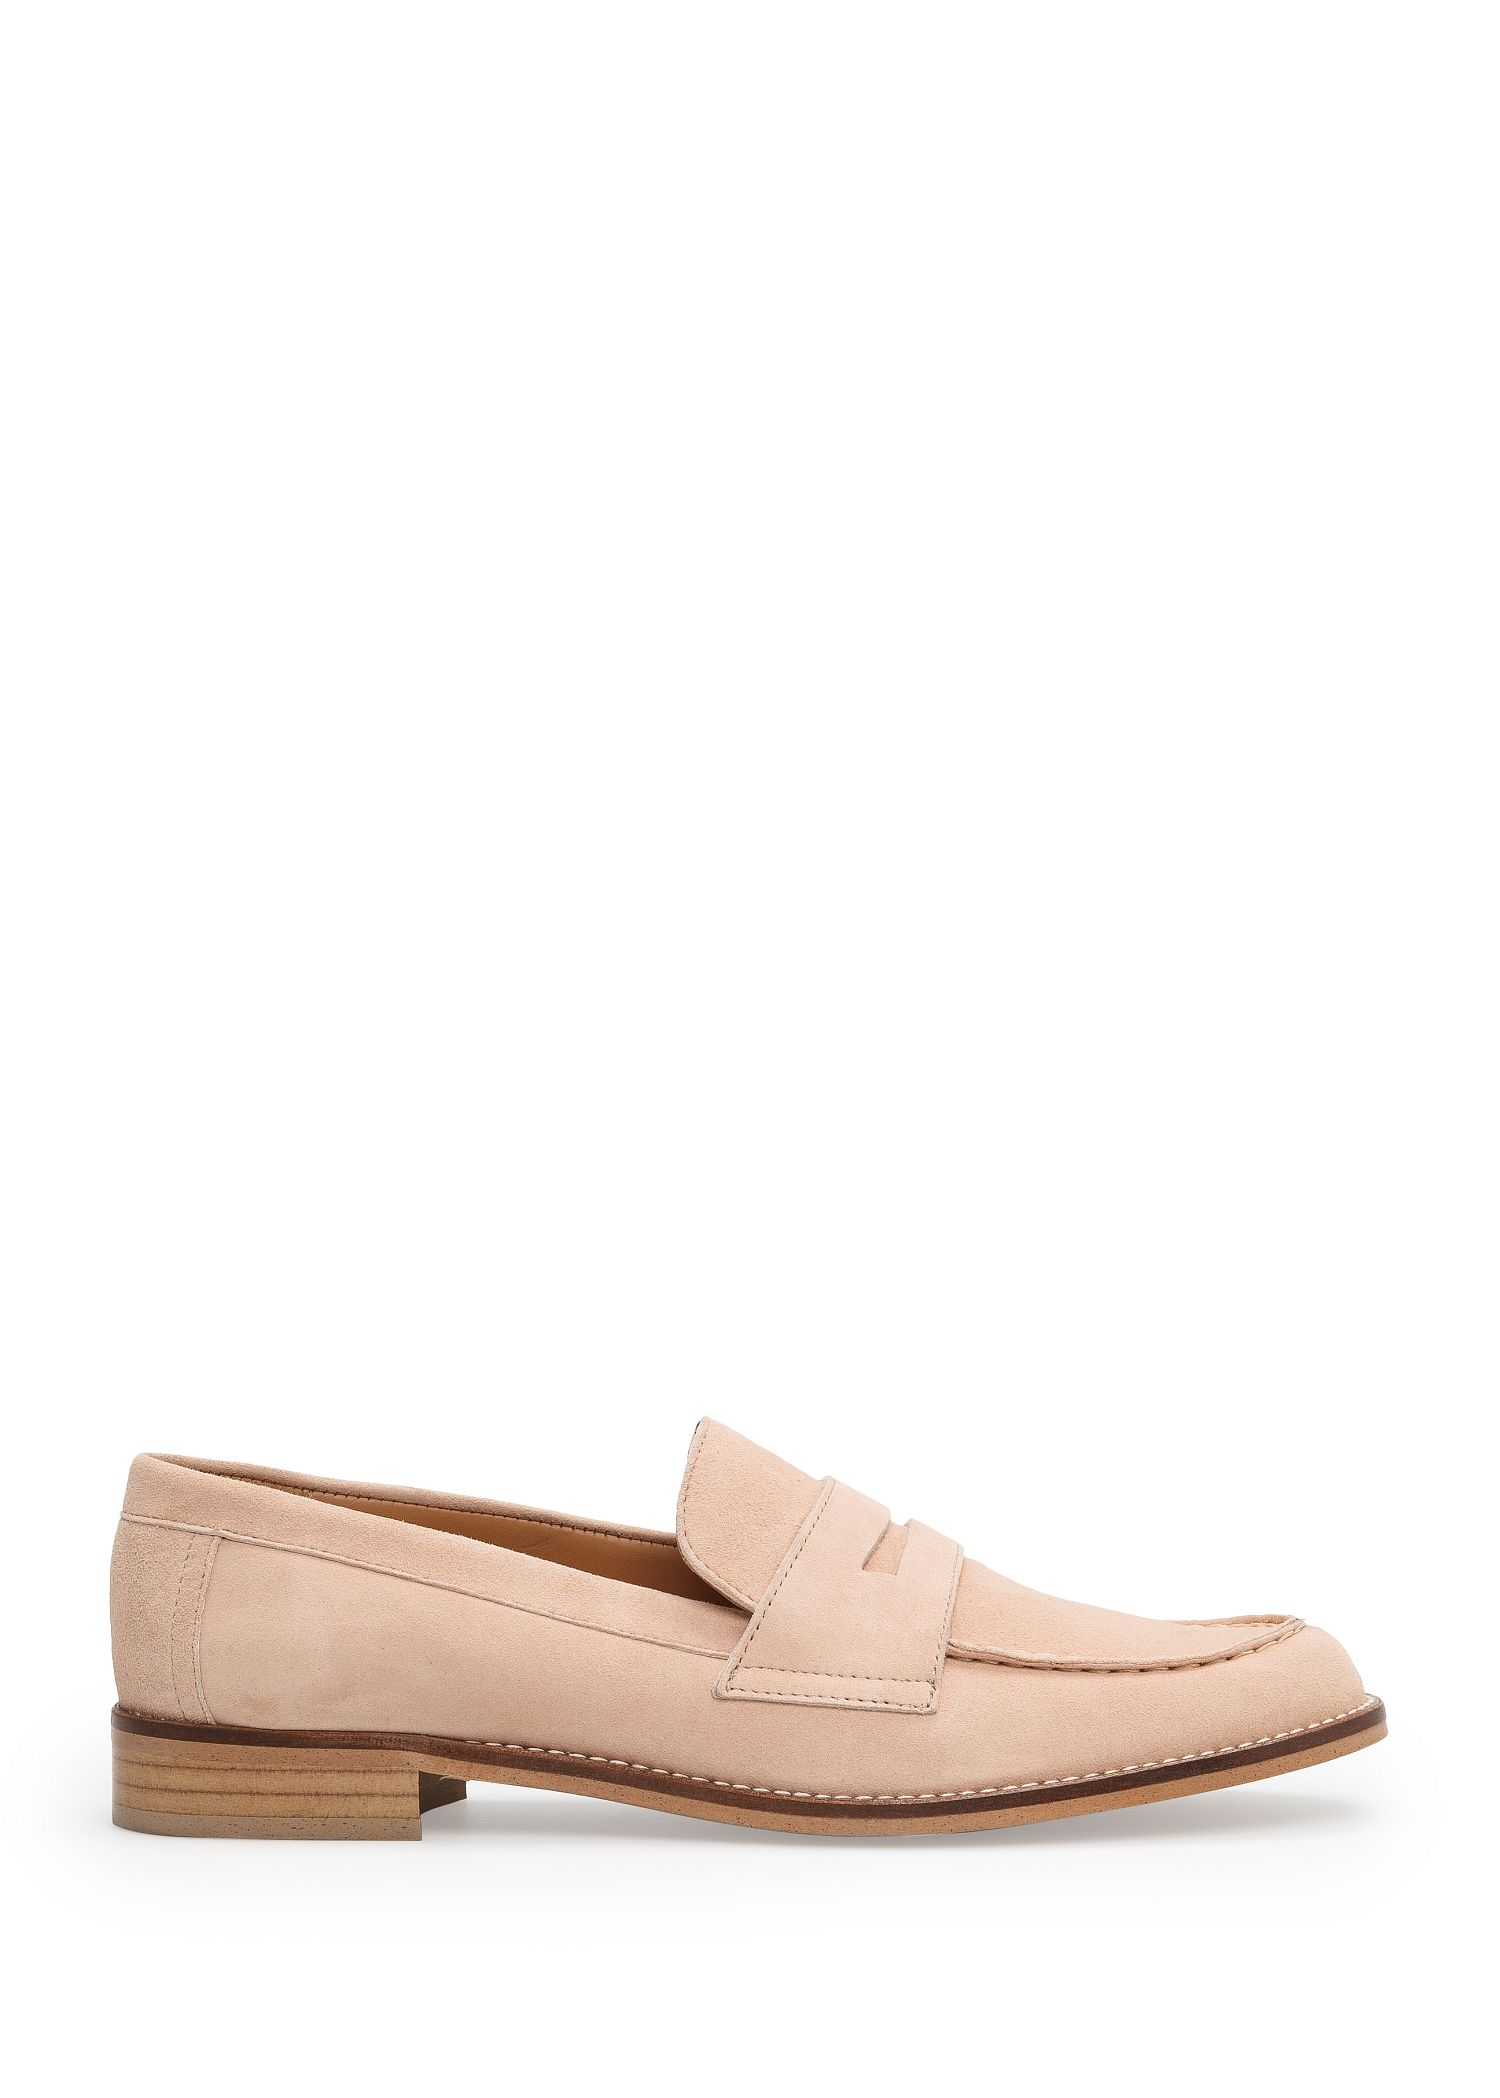 b36bab6cbb1 Lyst - Mango Leather Penny Loafers in Natural